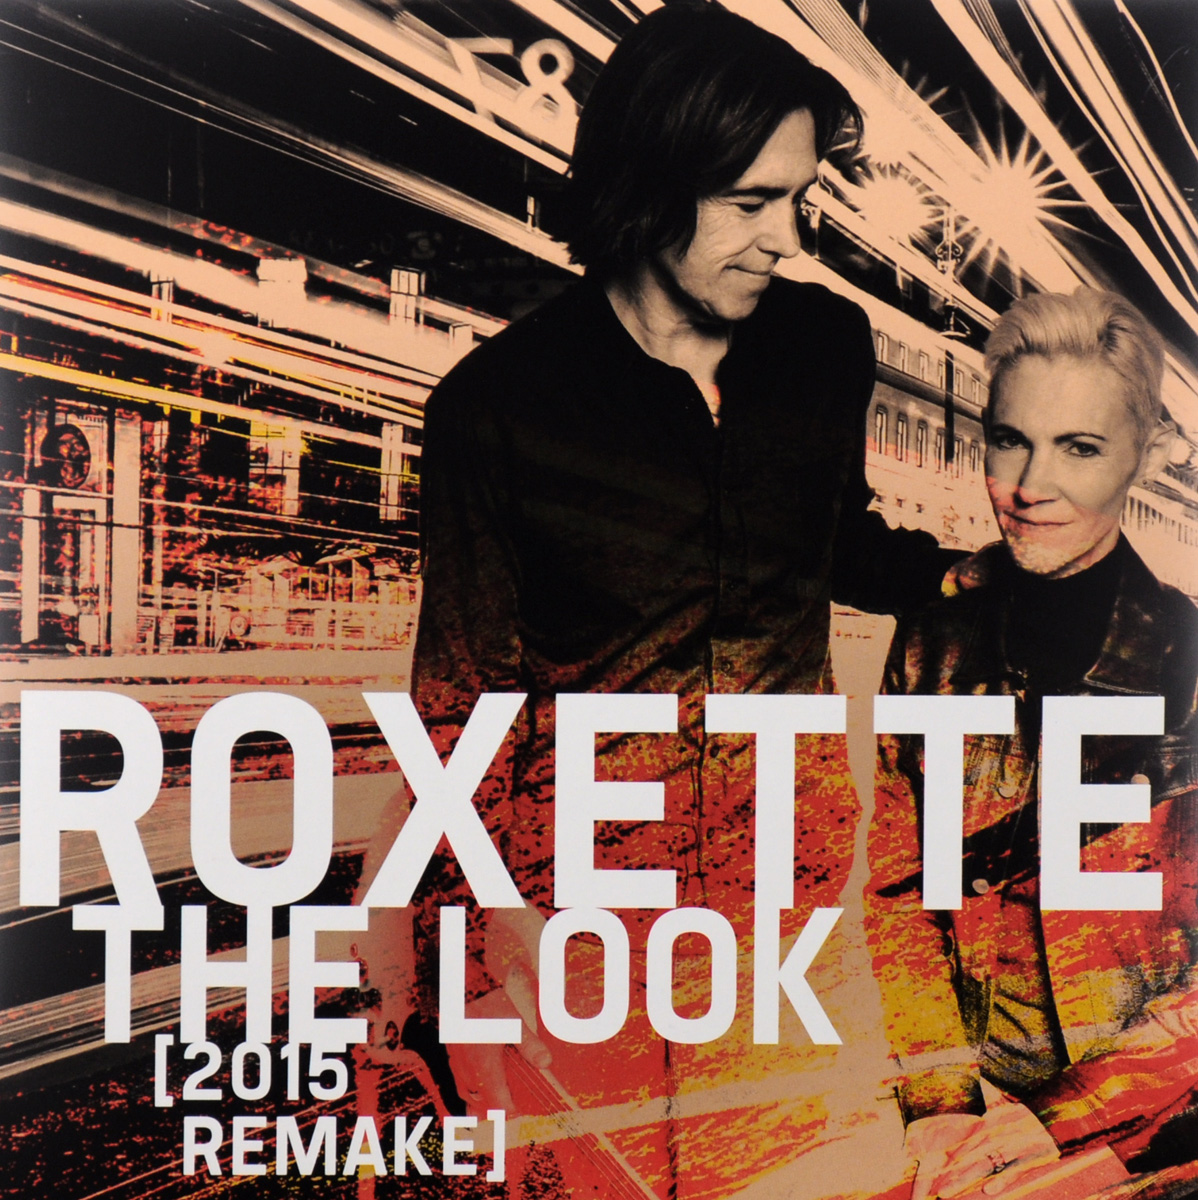 Roxette Roxette. The Look (2015 Remake) (LP) roxette roxette a collection of roxette hits their 20 greatest songs